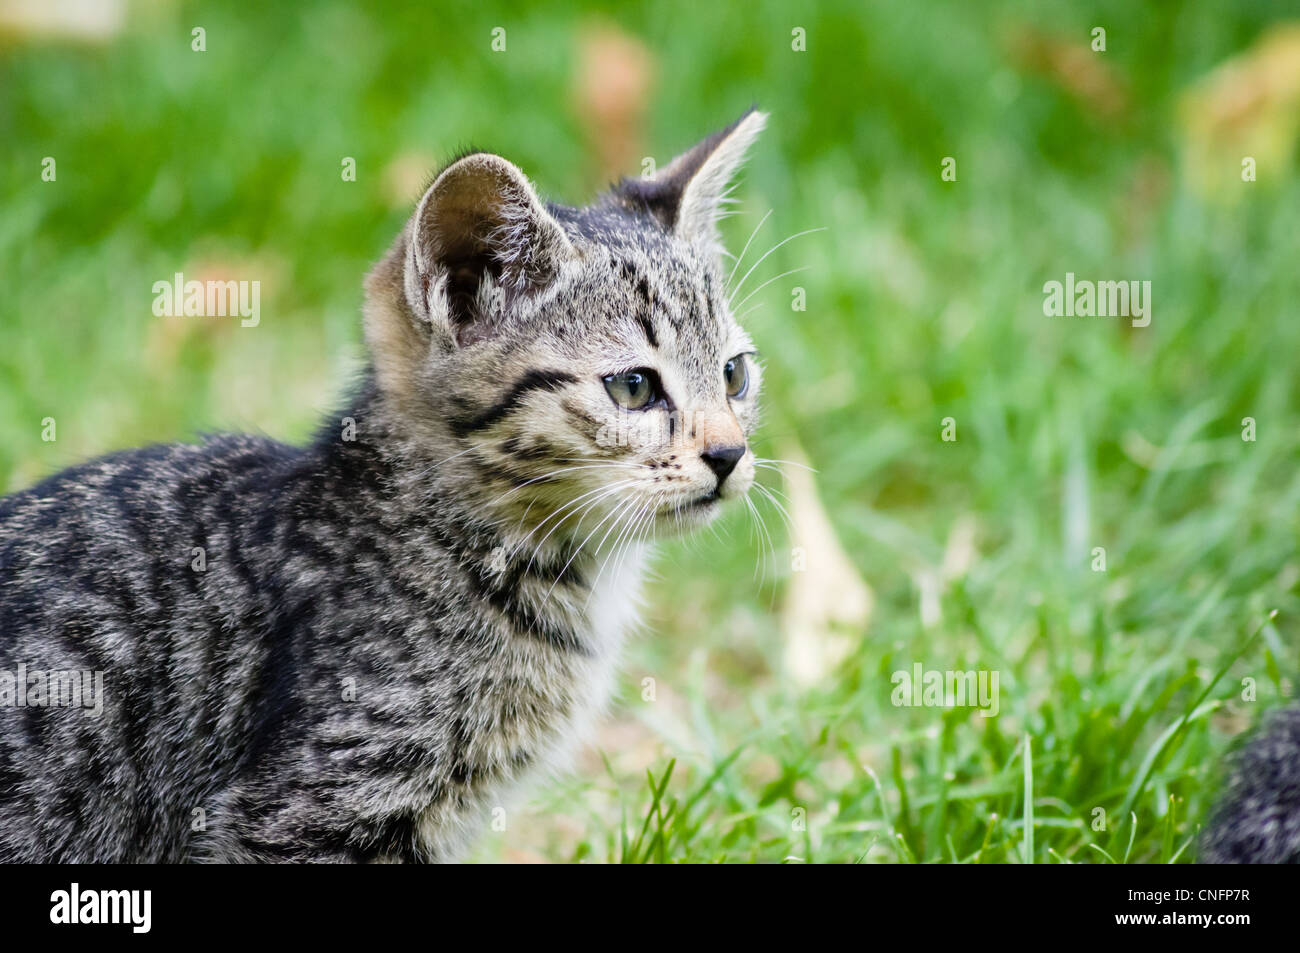 Cats and kittens in the garden. - Stock Image